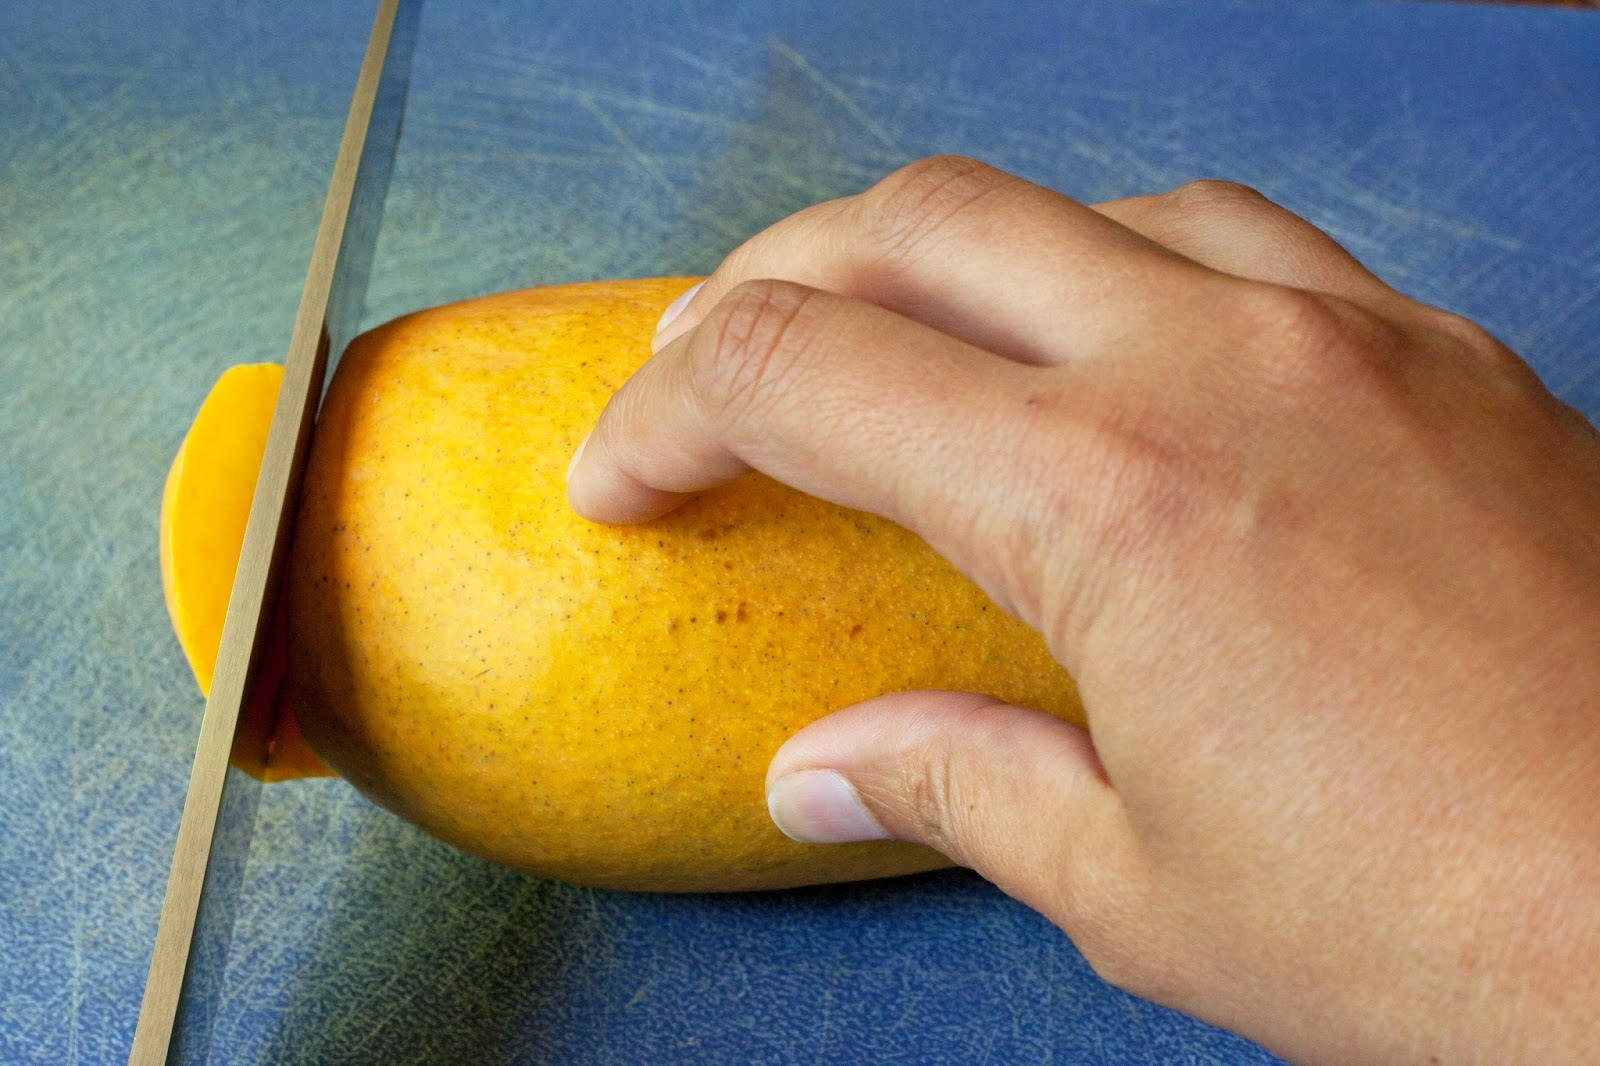 Slice off the lower tip of the mango